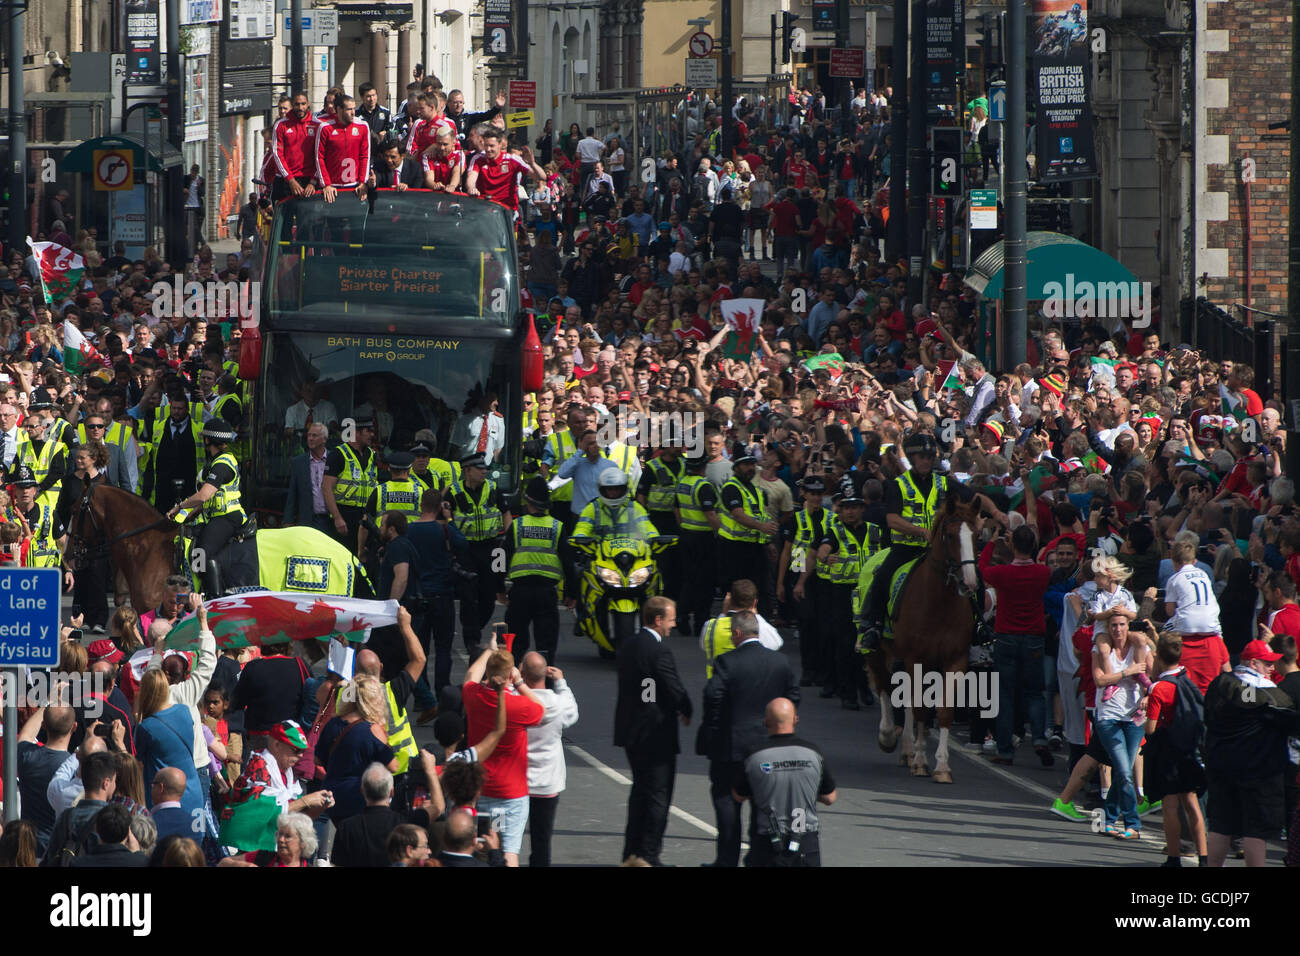 The Welsh football team are welcomed home with a public celebration event in Cardiff after reaching the semi-finals - Stock Image